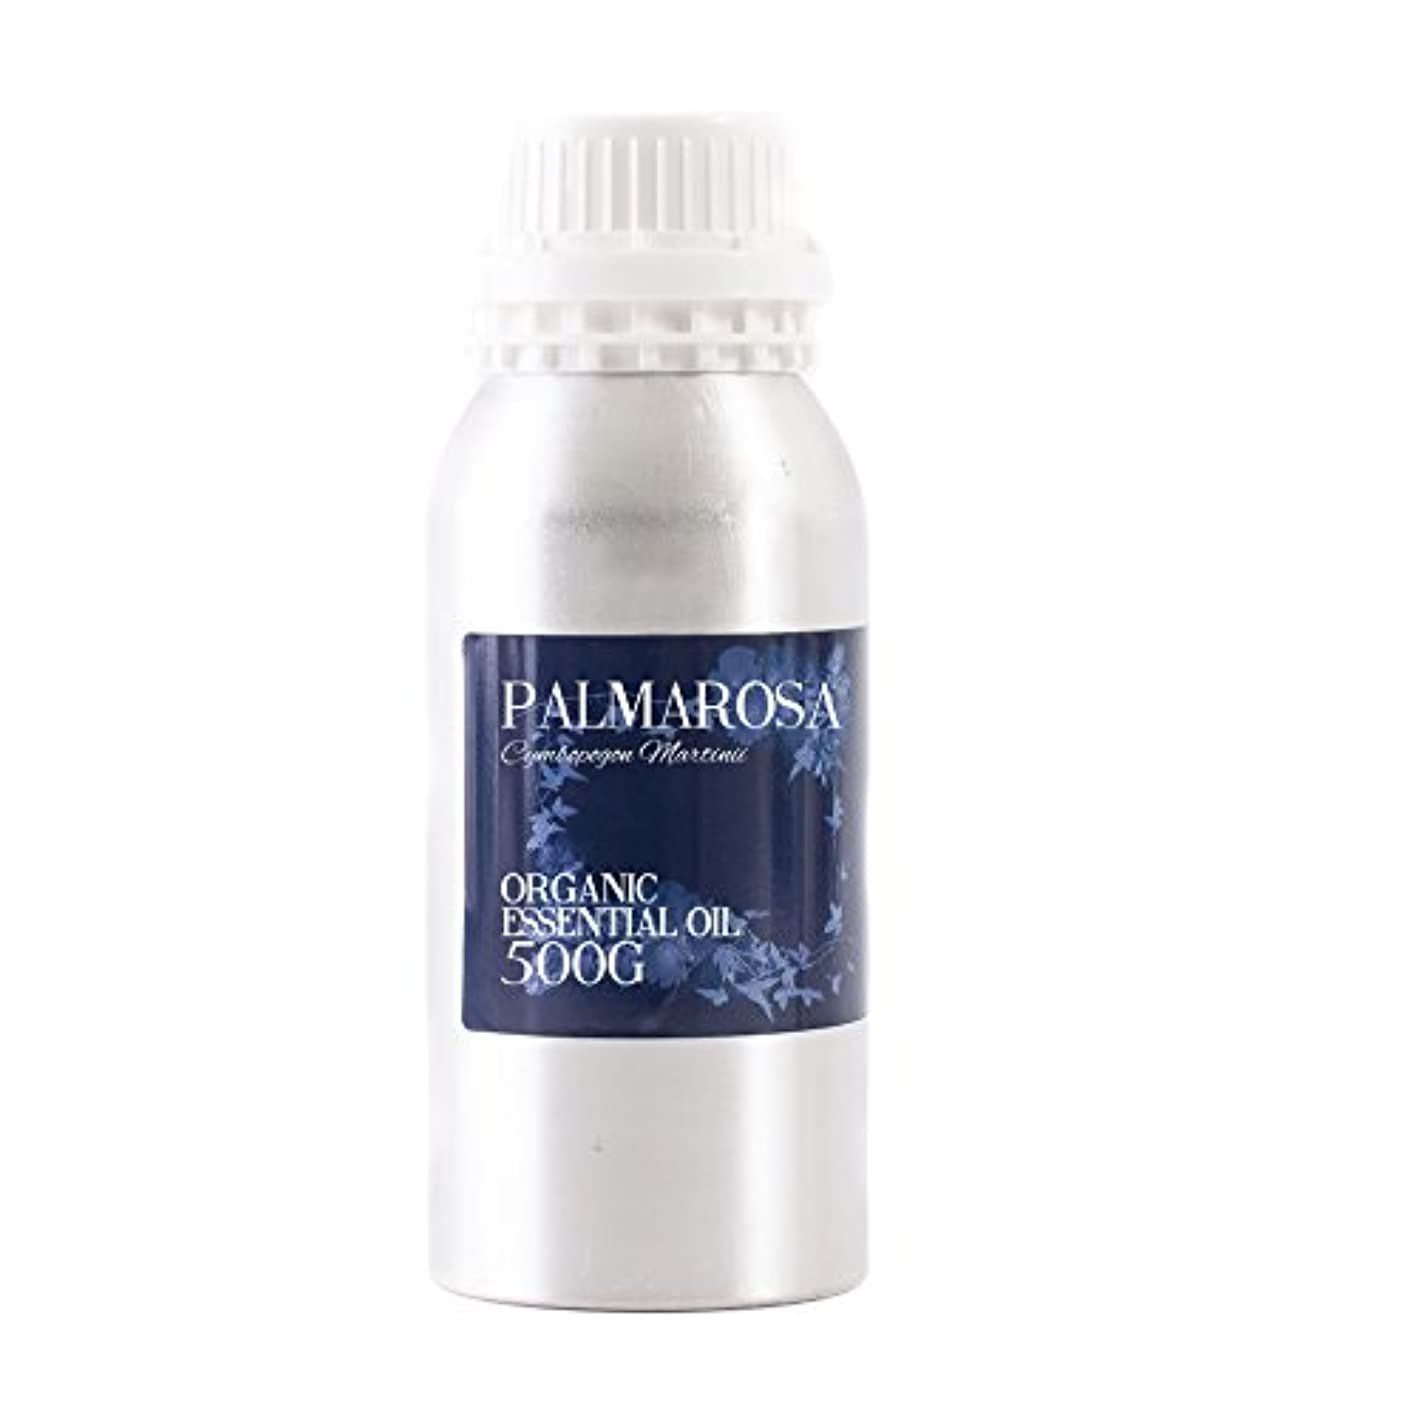 コンベンションパネル縫うMystic Moments | Palmarosa Organic Essential Oil - 500g - 100% Pure